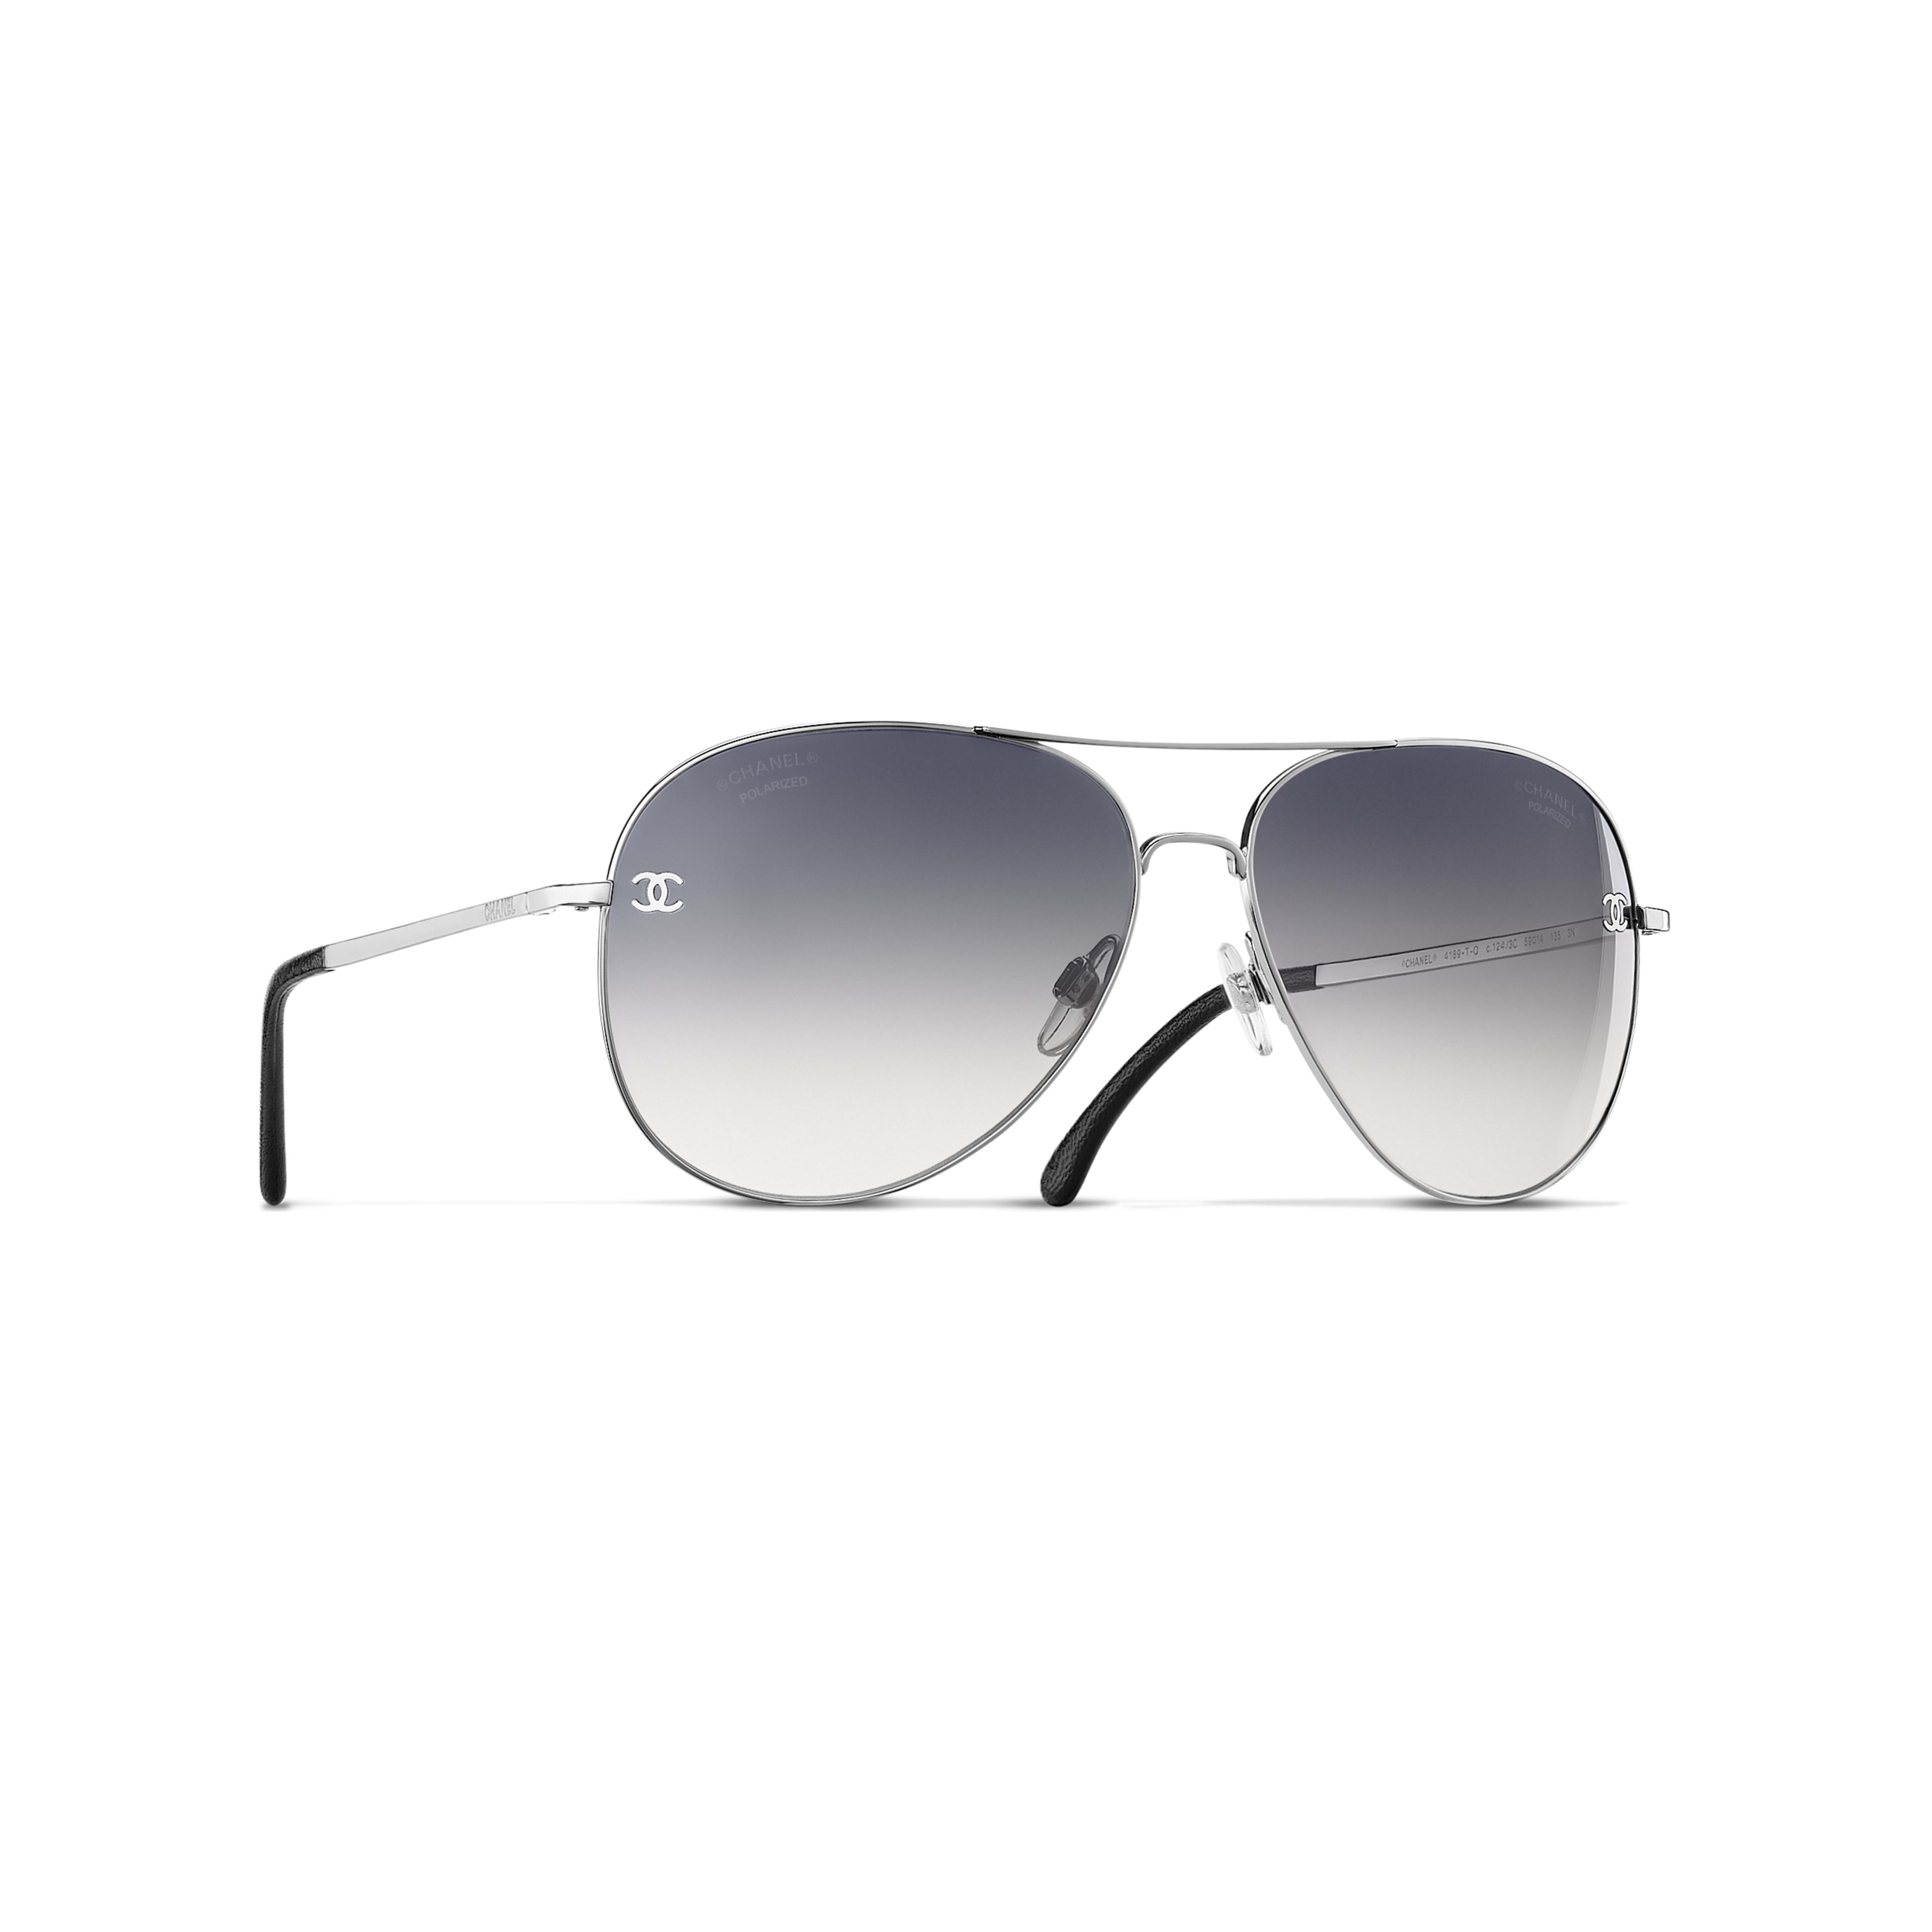 Pilot Sunglasses - Silver - Titanium & Calfskin - CHANEL - Default view - see standard sized version